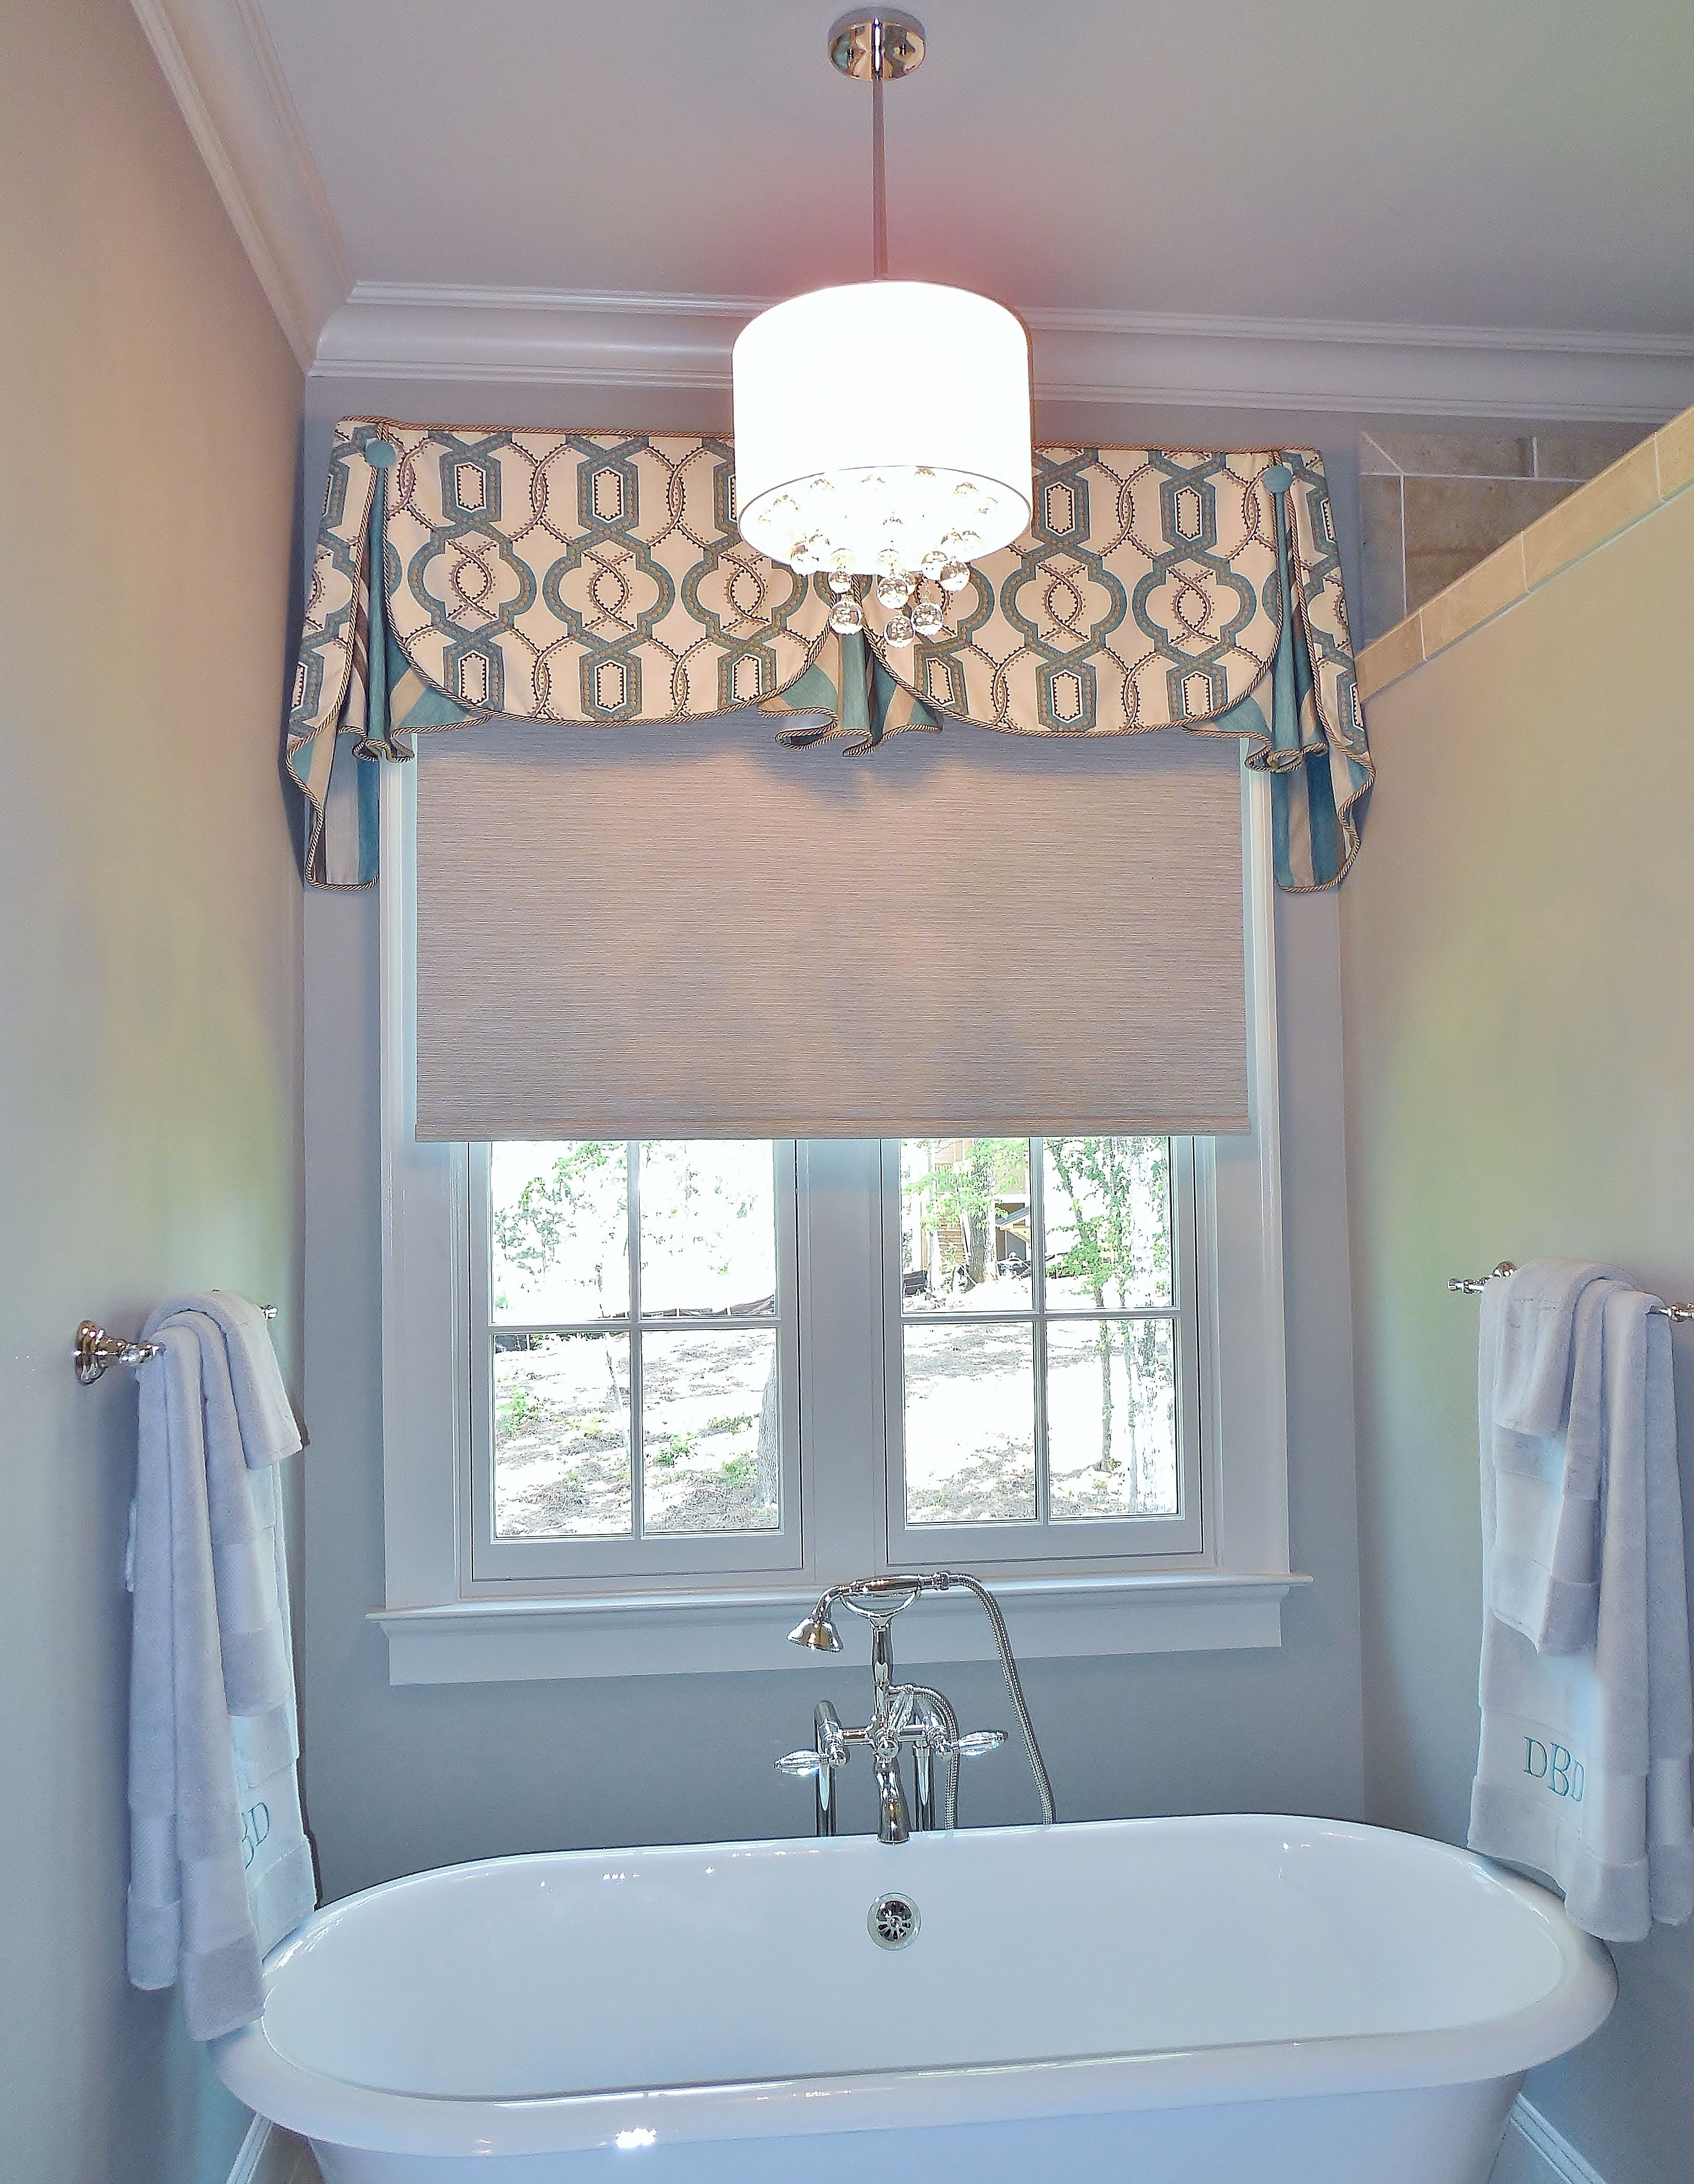 The Perfect Place For A Motorized Shade Is Over The Tub This One Also Has O Window Treatments Living Room Valance Window Treatments Bathroom Window Treatments [ jpg ]